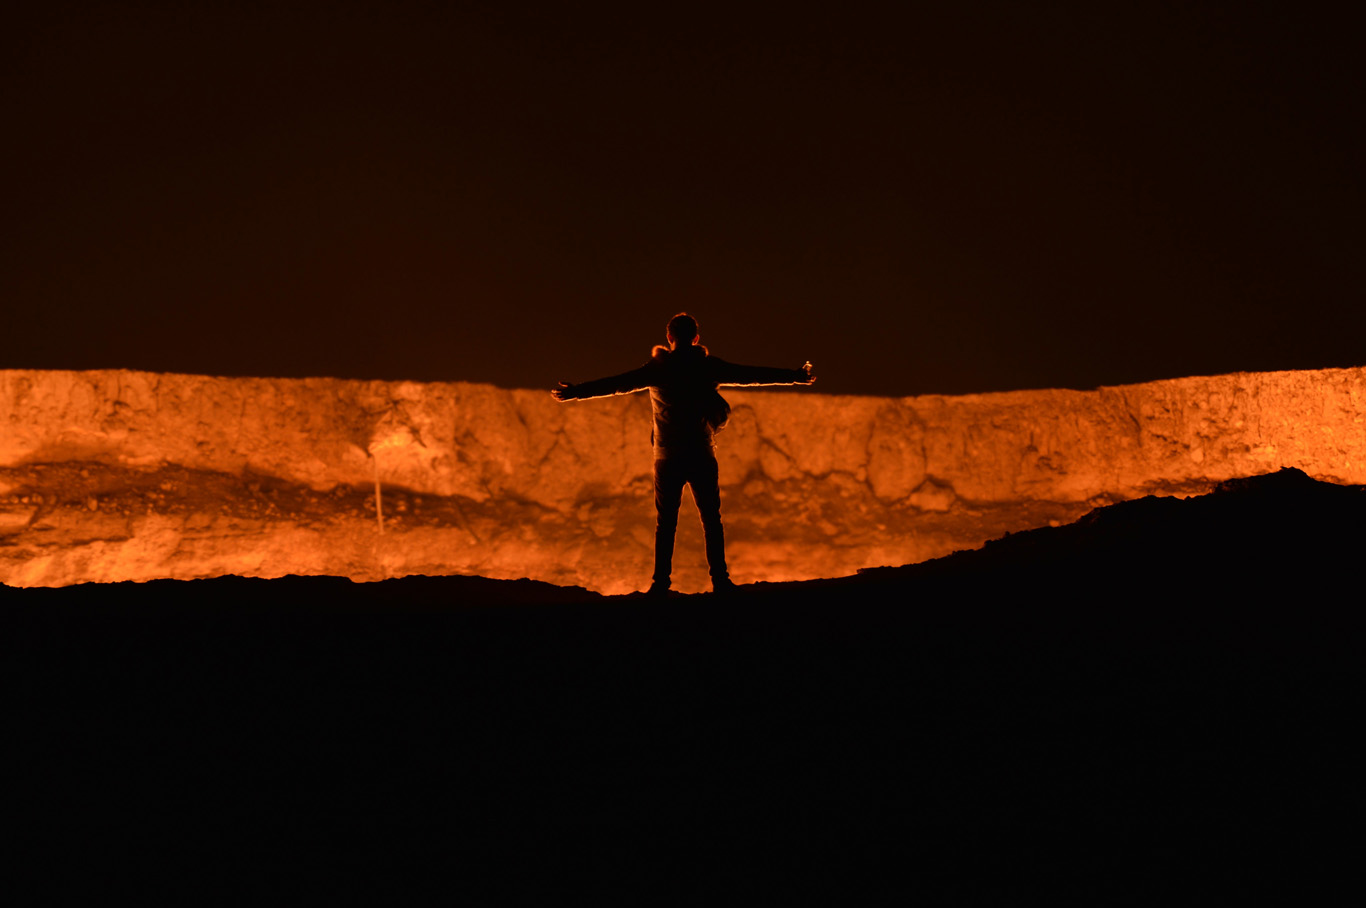 Standing at the crater